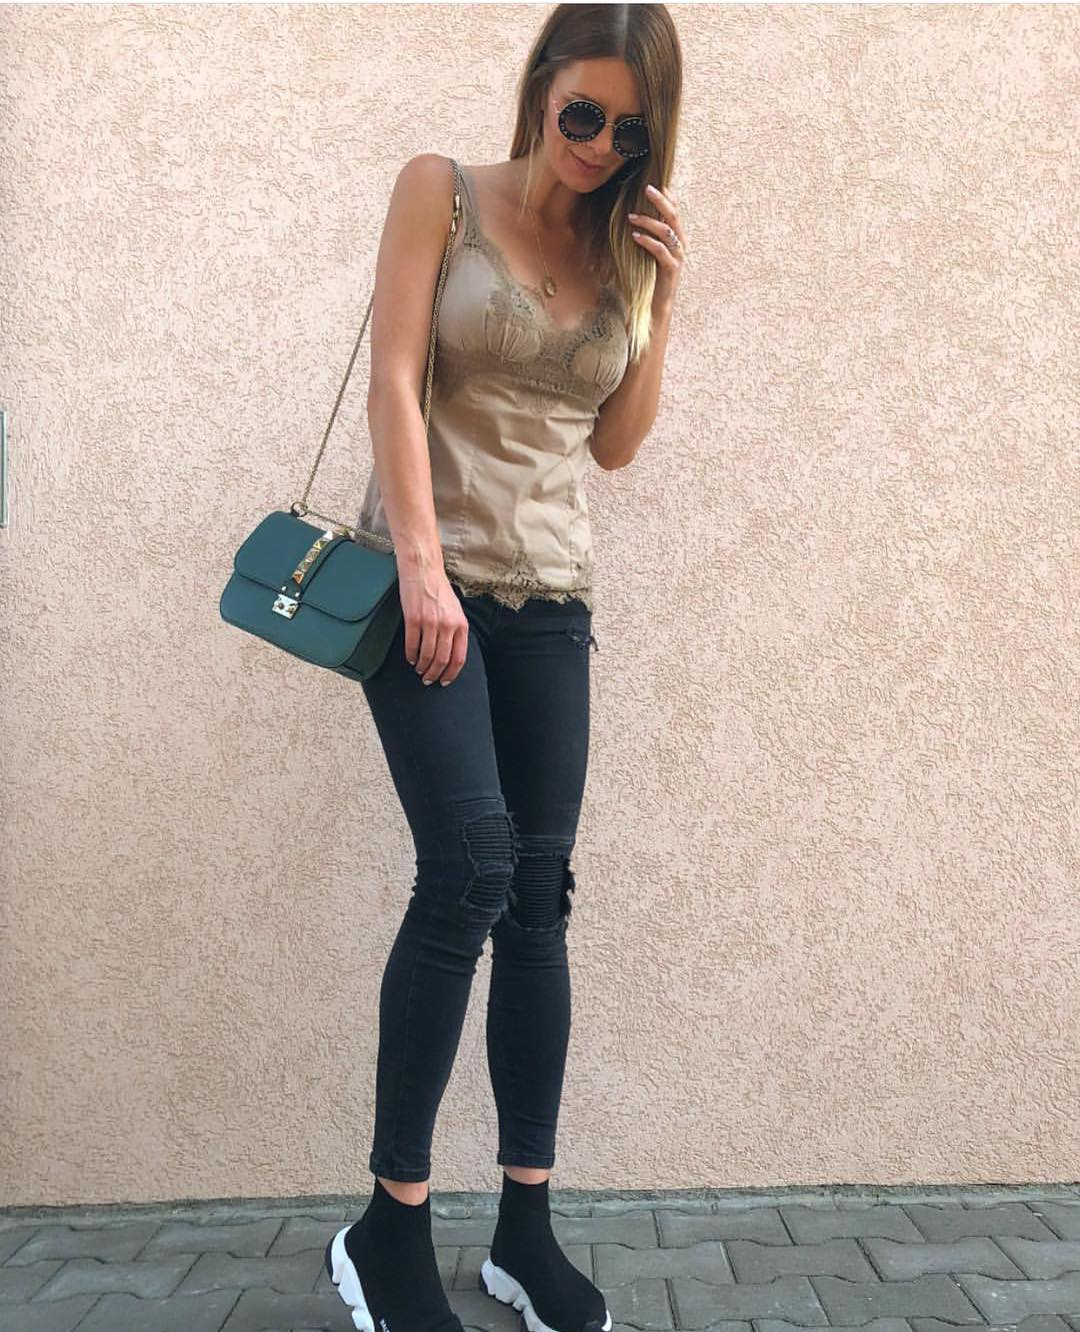 Khaki Green Lace Slip Tank And Black Skinny Jeans For Casual Summer Walks 2019